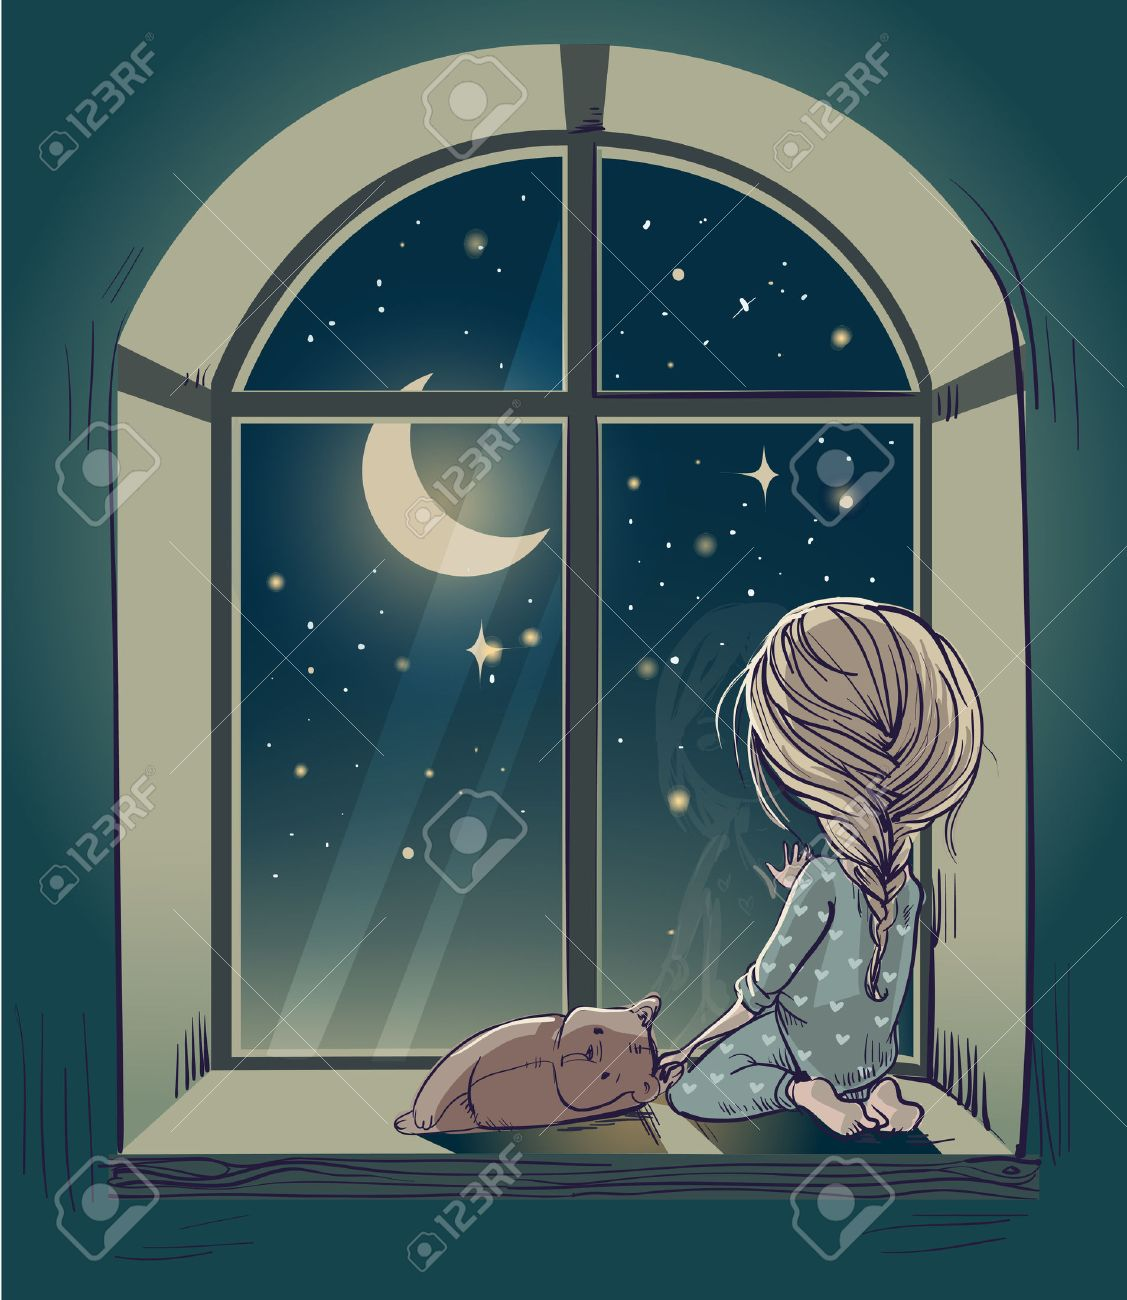 Kids at night with moon royalty free stock photography image - Night Cartoon Little Cute Cartoon Girl With Teddy Bear And The Moon Night